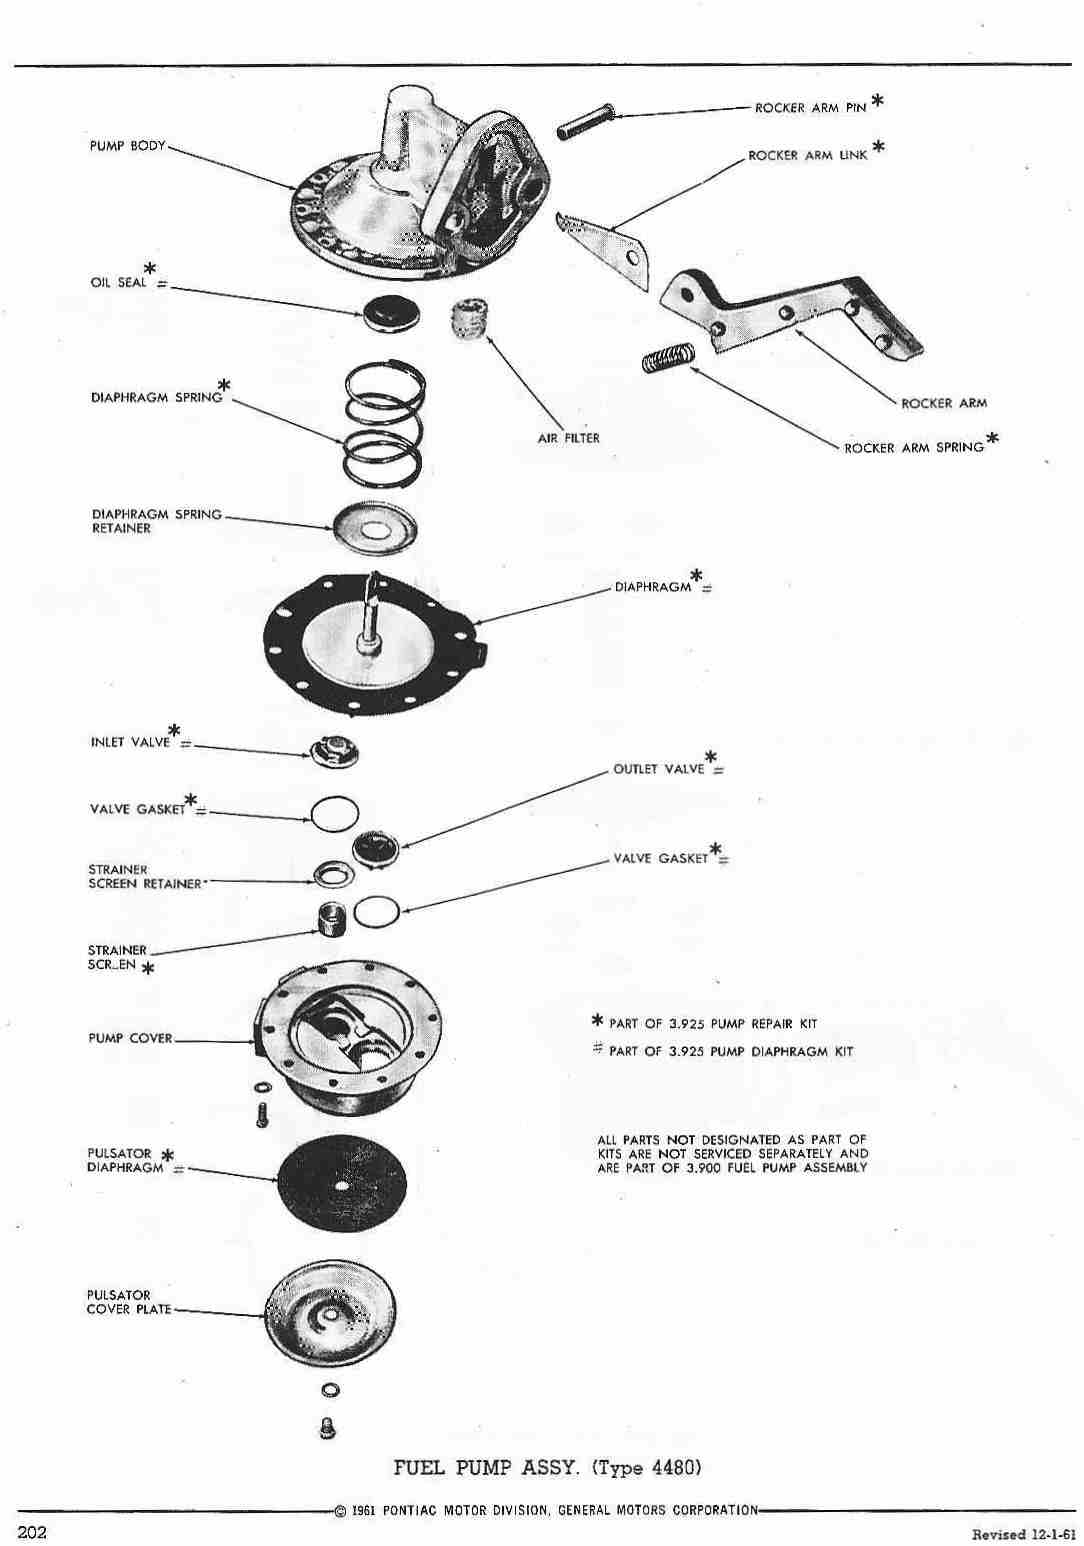 pontiac 1960 master parts catalog 202 fuel pump assy type 4480